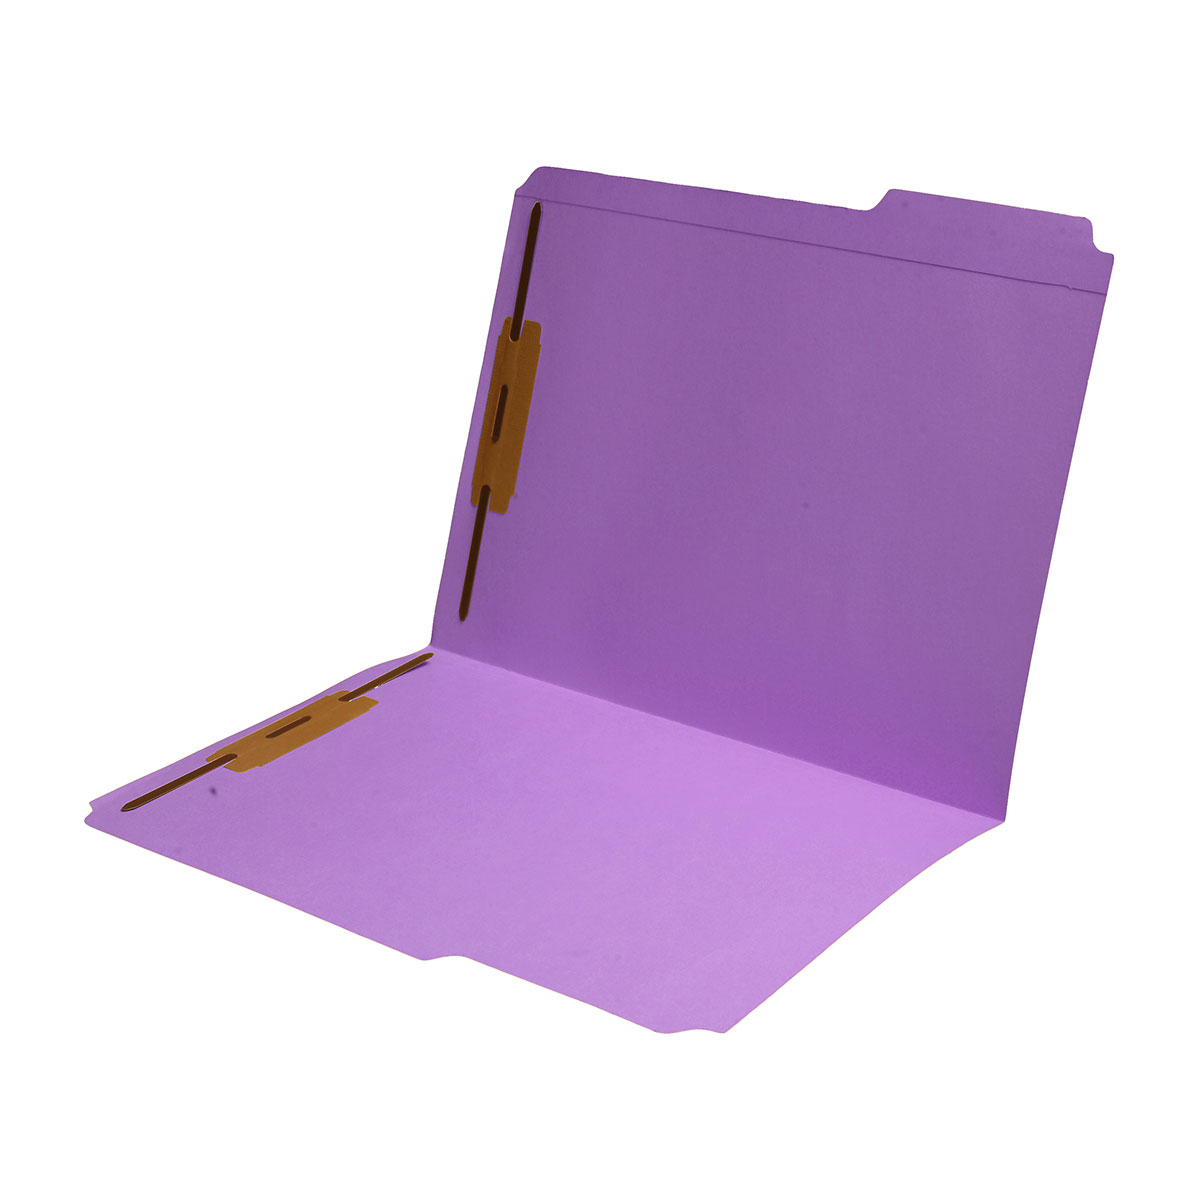 S-9042-LAV - 11 pt Lavender Folders, 1/3 Cut Reinforced Top Tab - Assorted, Letter Size, Fastener Pos #1 and #3 (Box of 50)